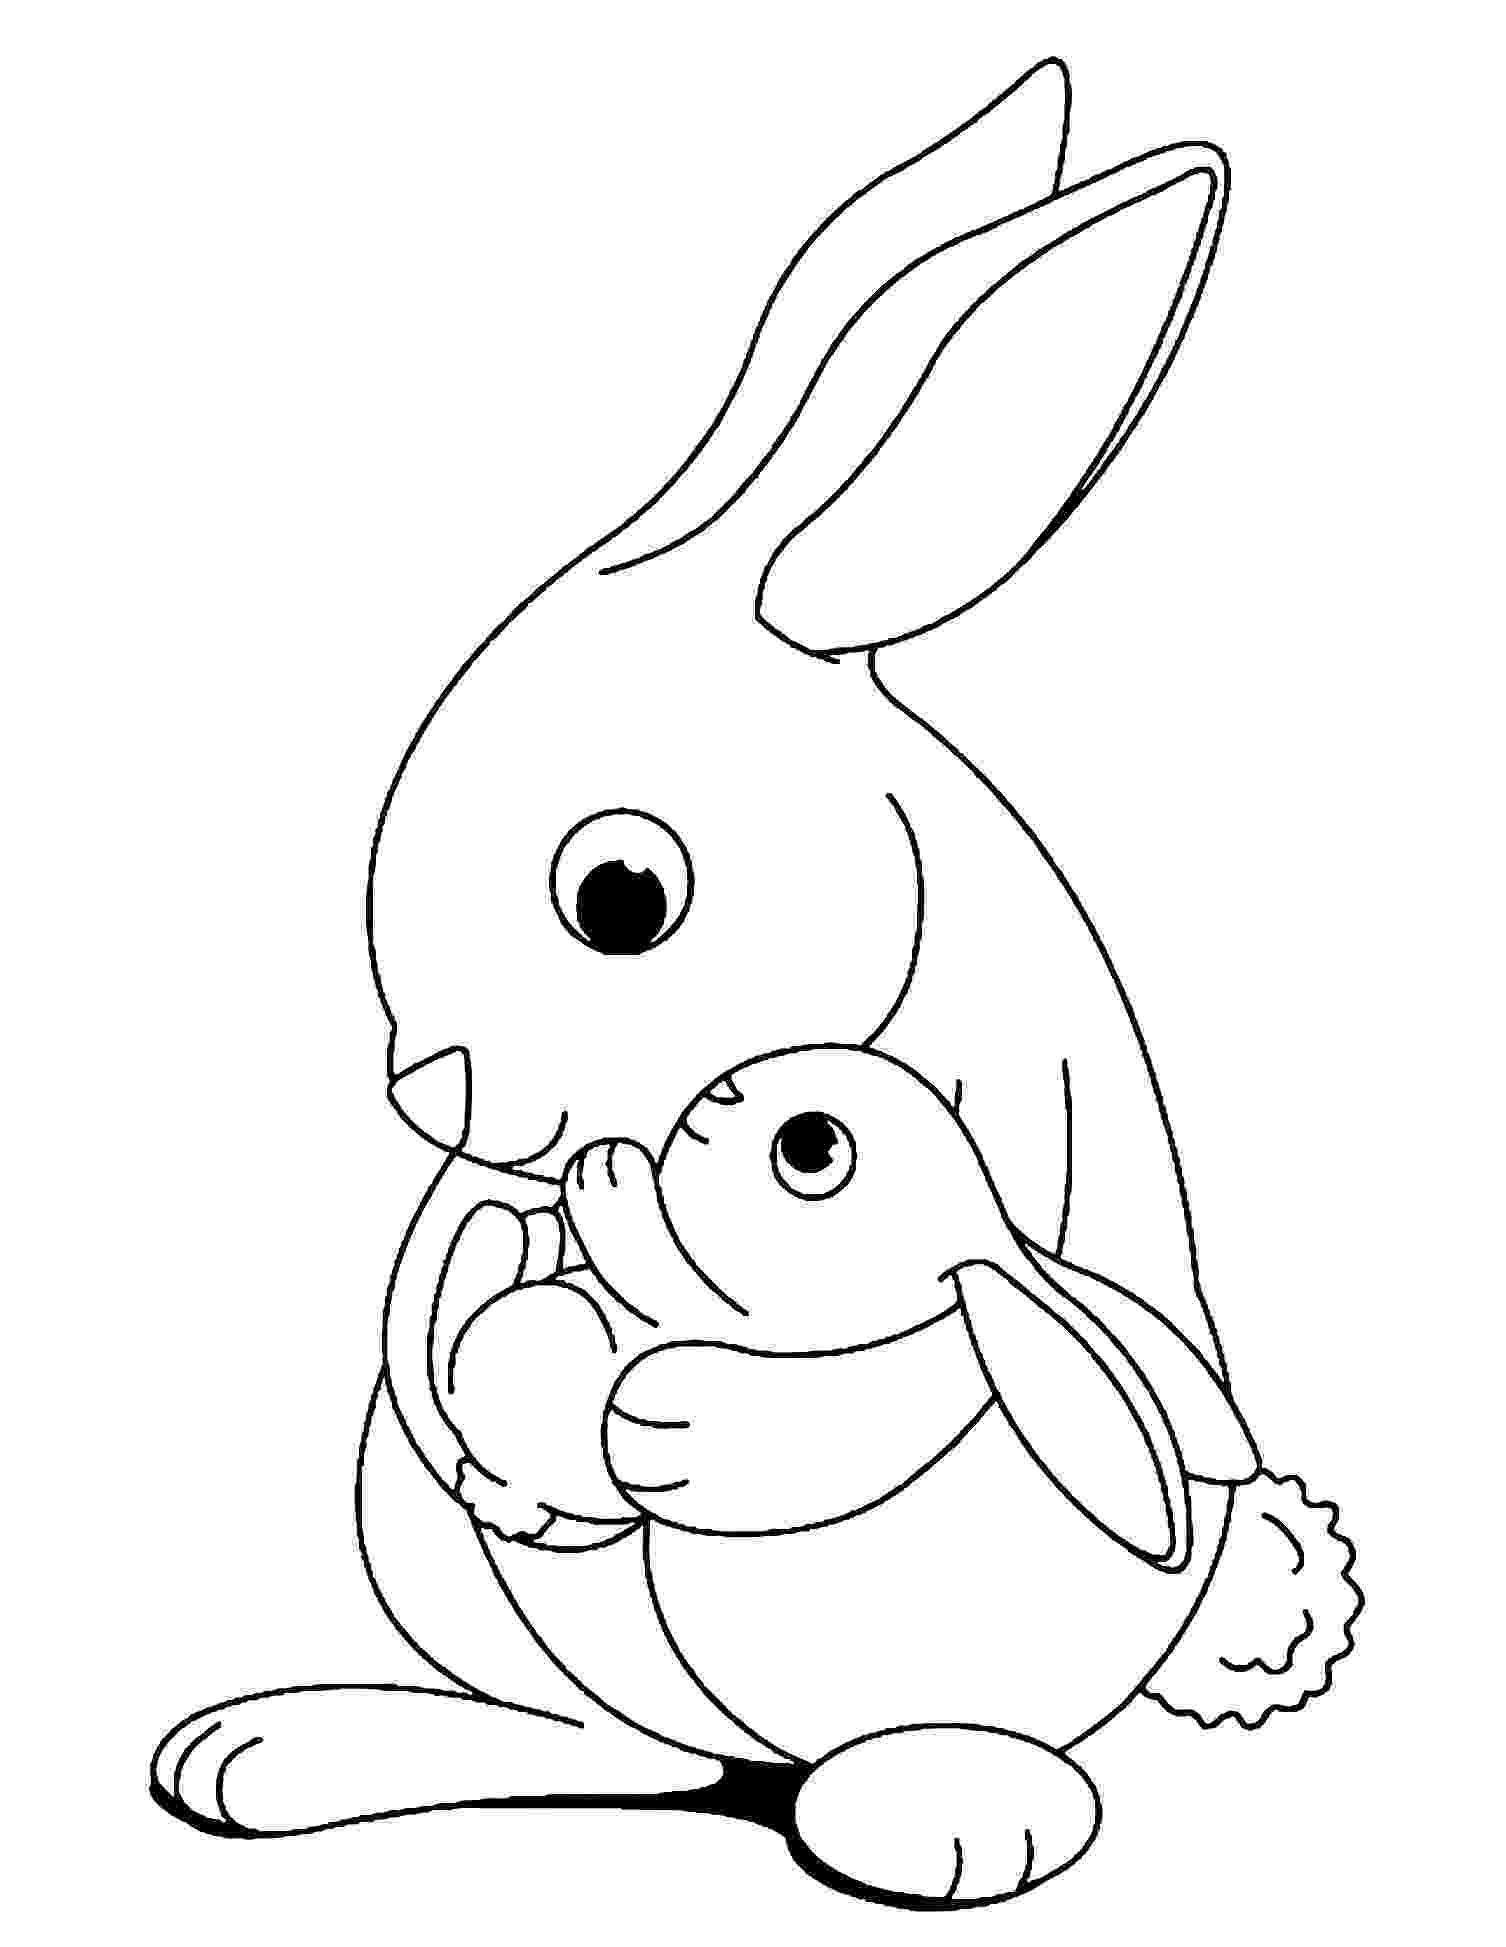 pictures of rabbits for kids bunny coloring pages best coloring pages for kids pictures for of rabbits kids